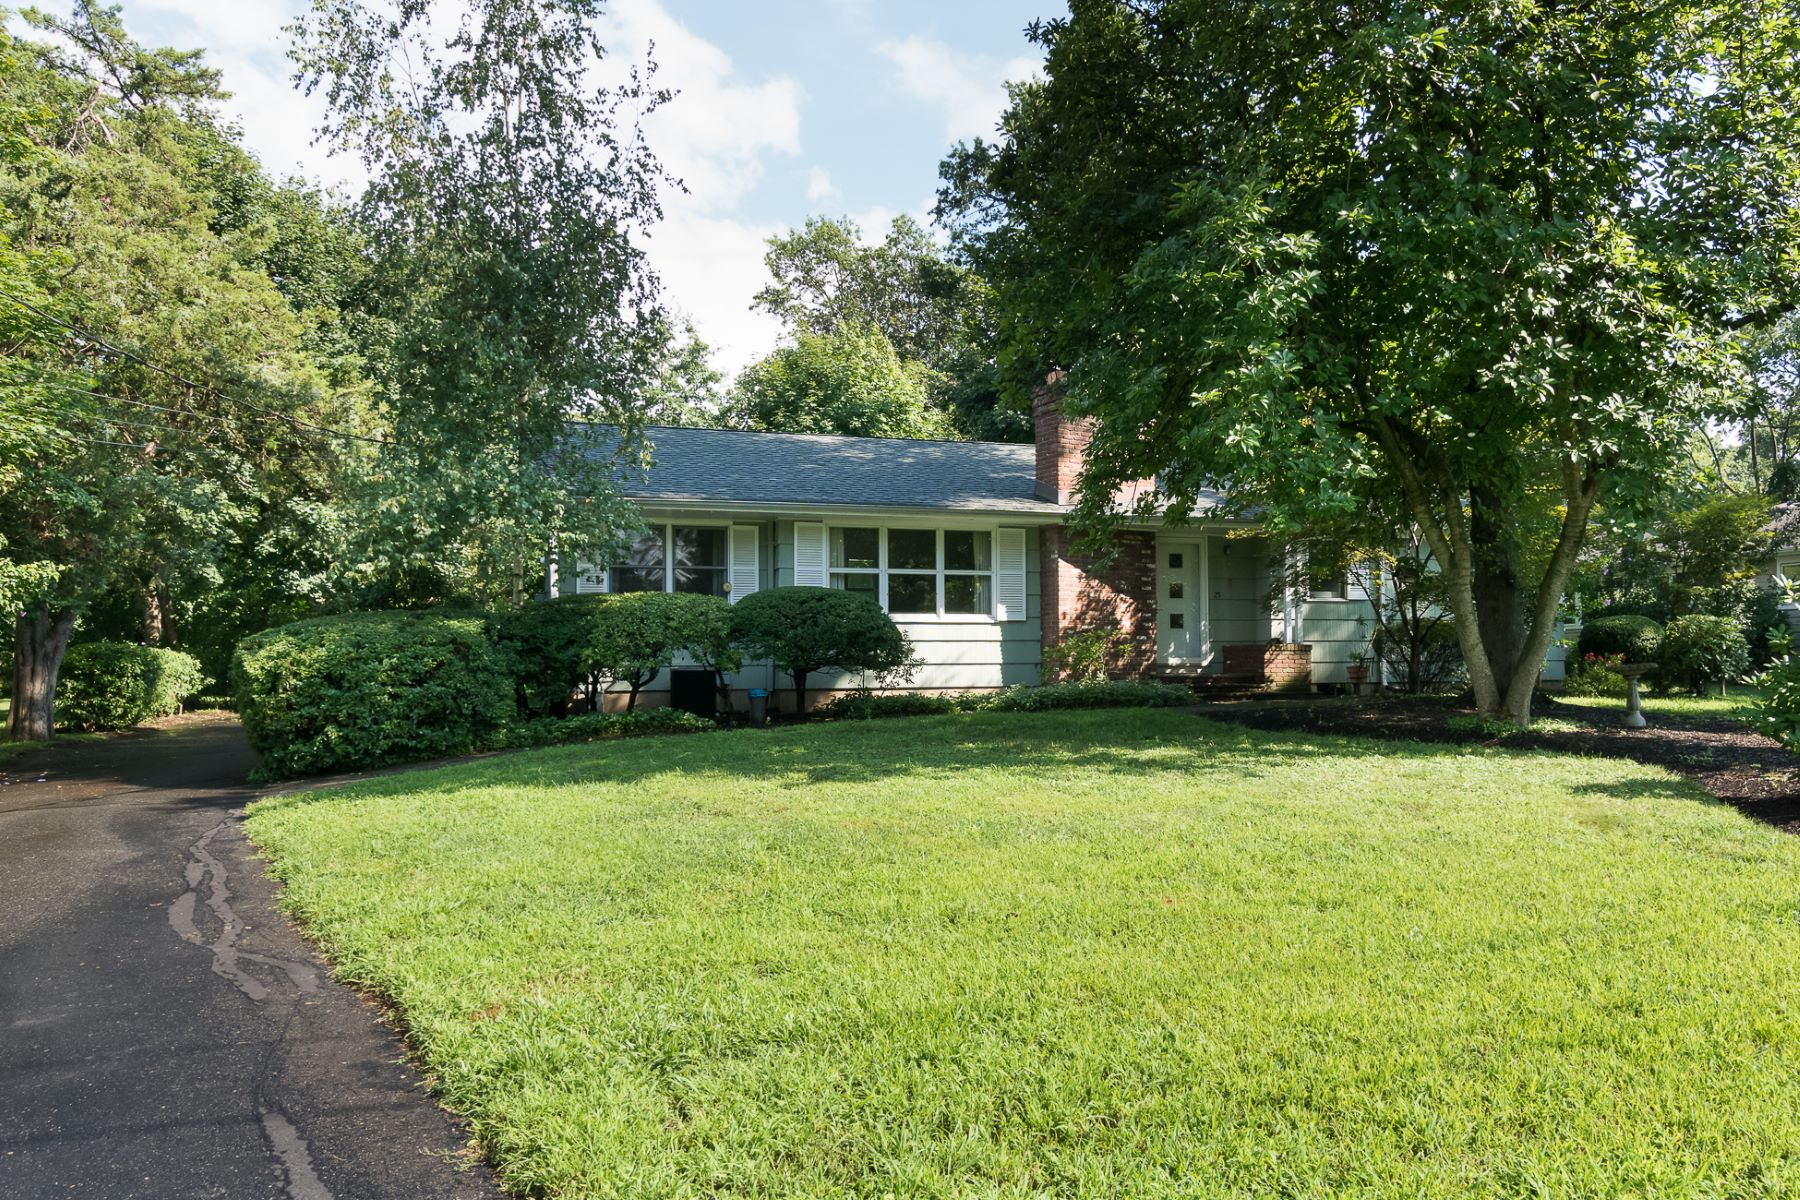 Single Family Homes for Sale at Charming Ranch Ready for its New Owner 25 Bedle Street, Belle Mead, New Jersey 08502 United States